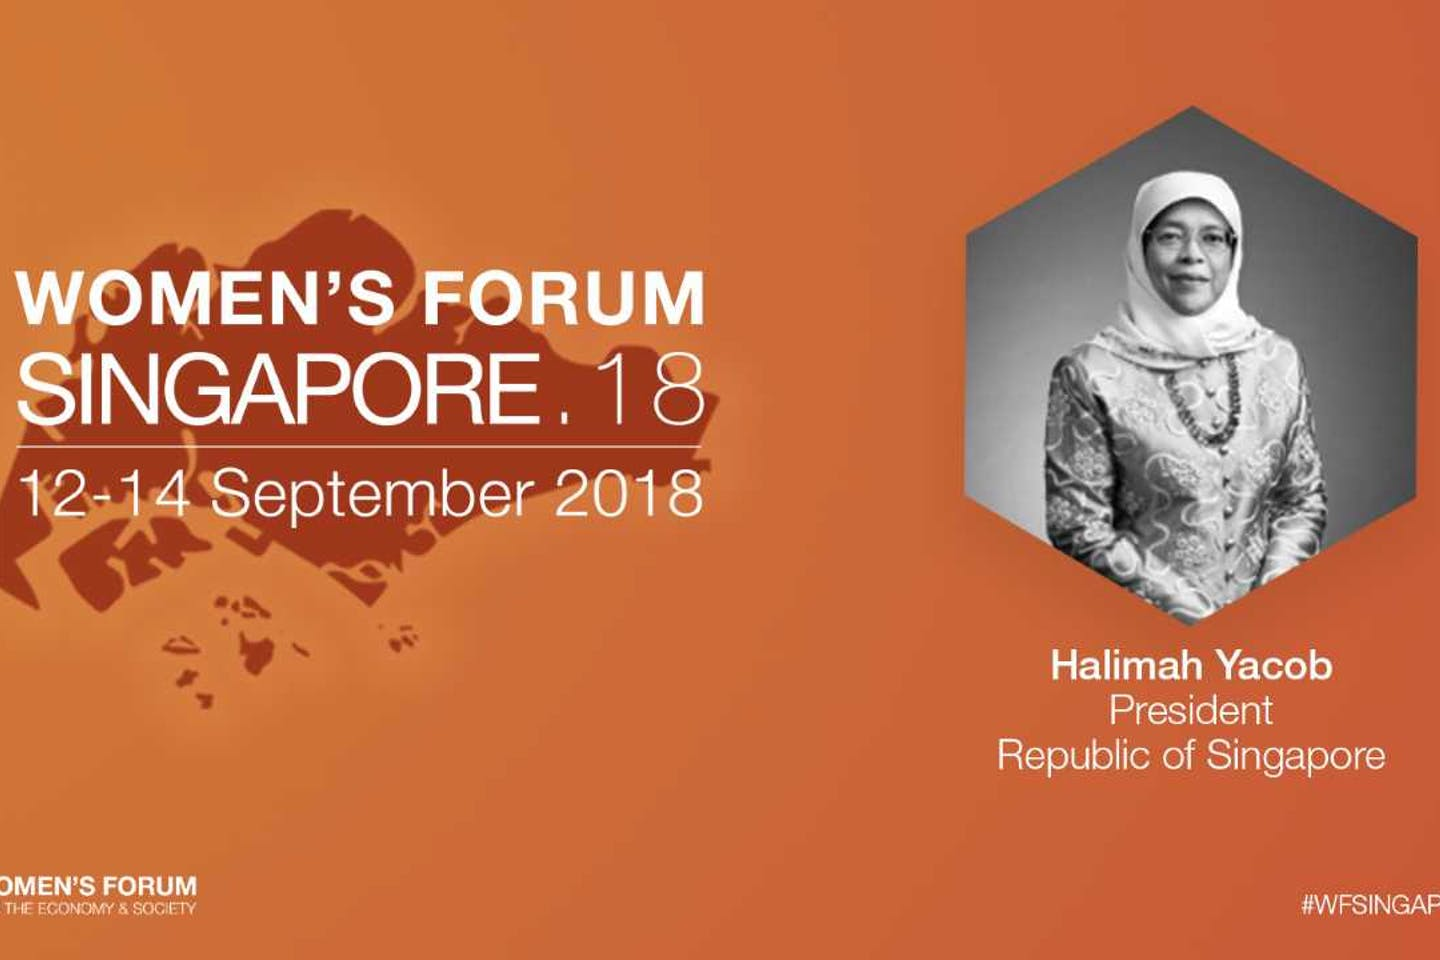 President of the Republic of Singapore to keynote Women's Forum Singapore 2018